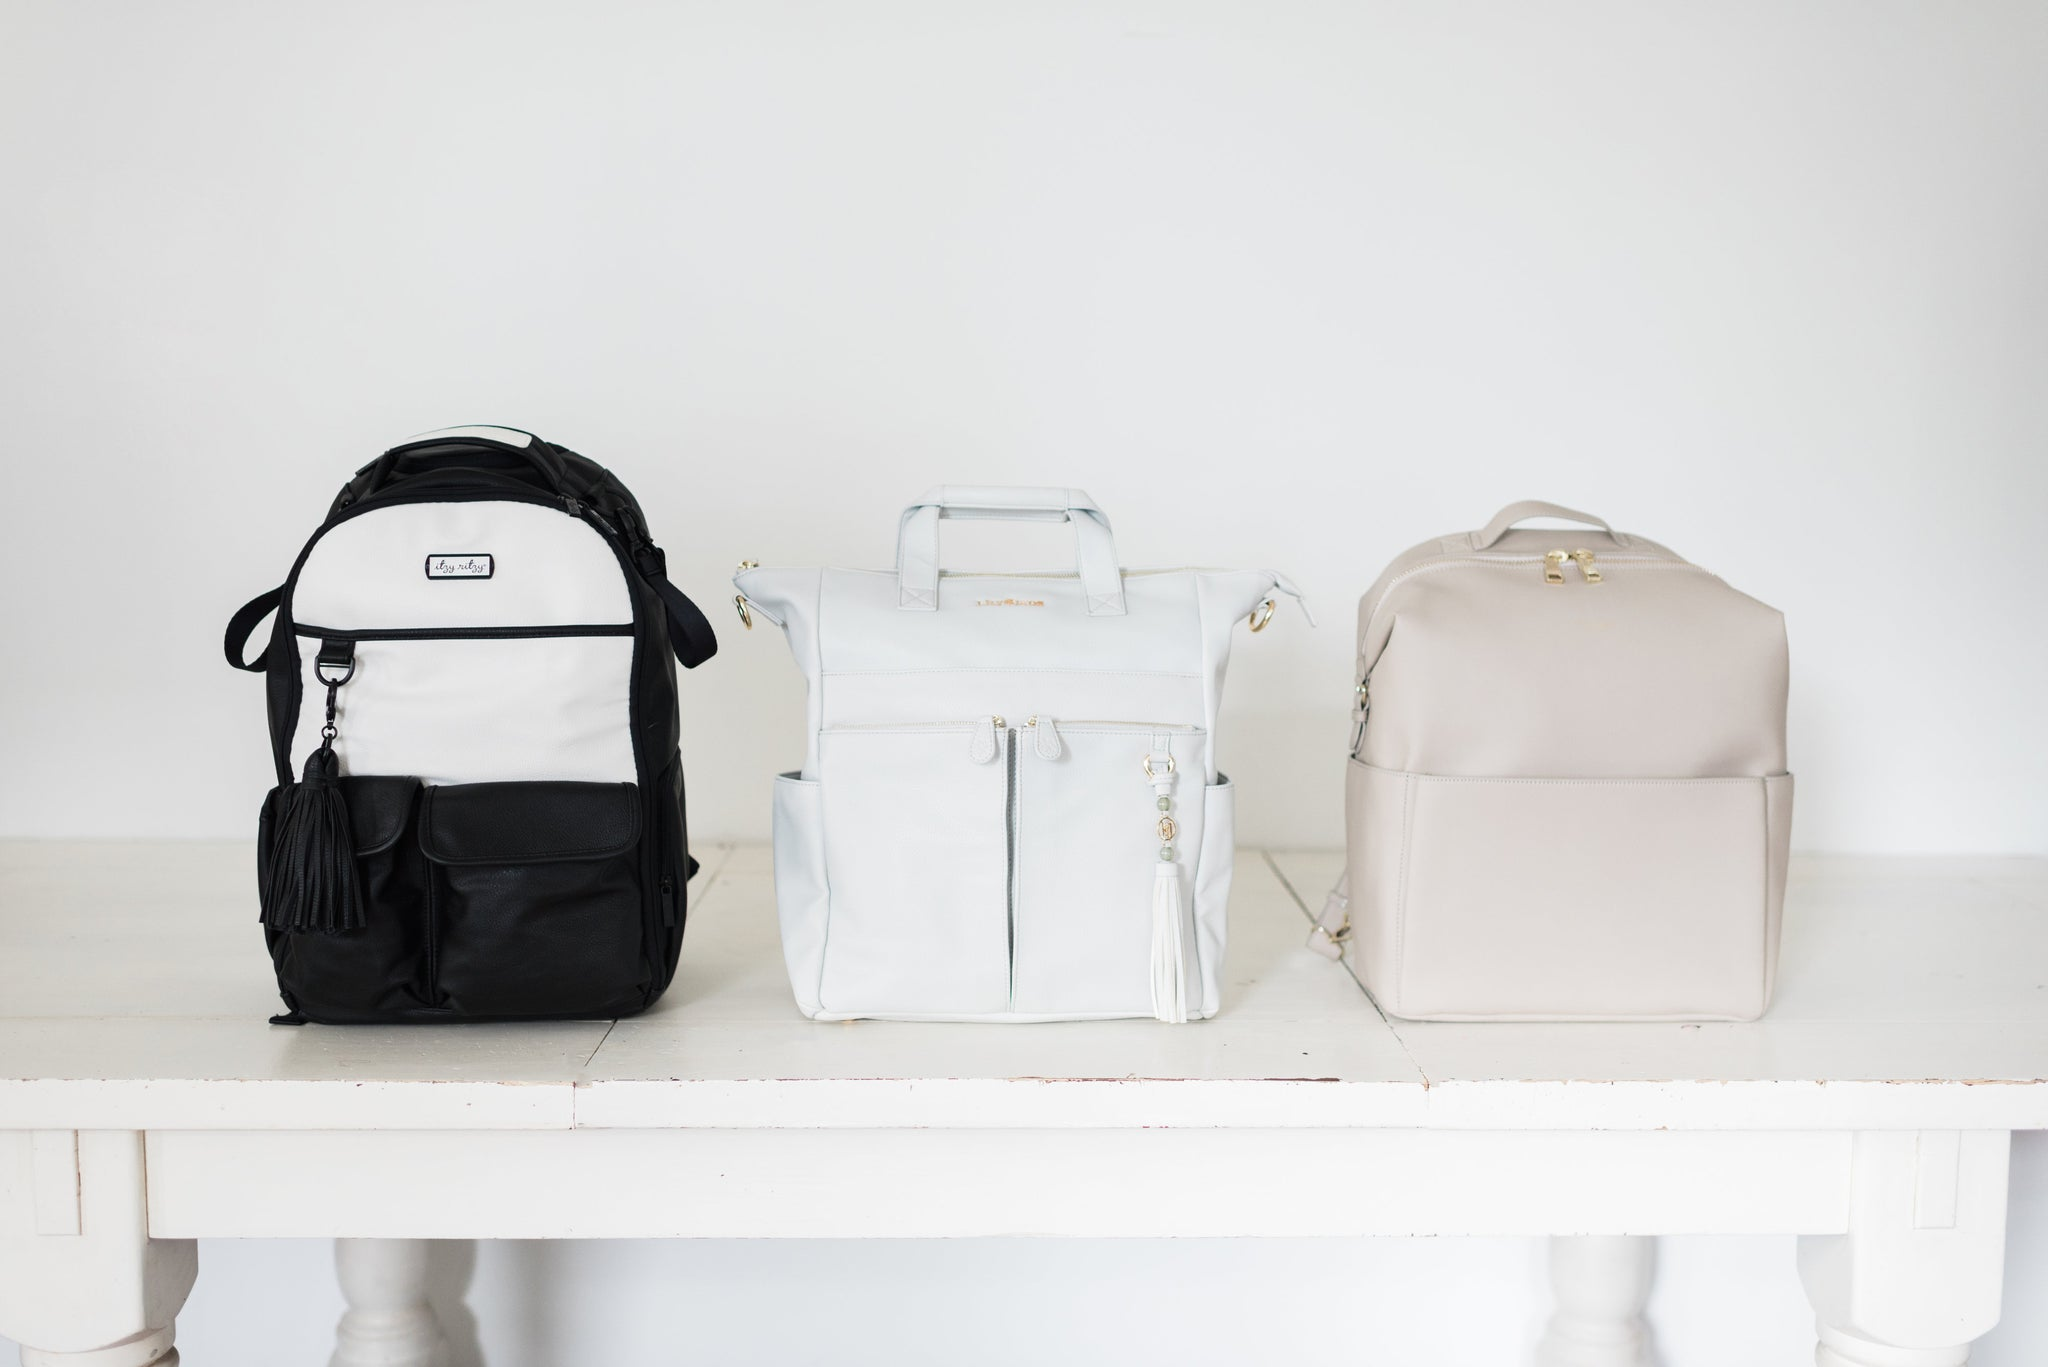 Diaper bag comparison, Itzy Ritzy, Mina Baie, Lily Jade, vegan leather backpack, vegan leather diaper bag